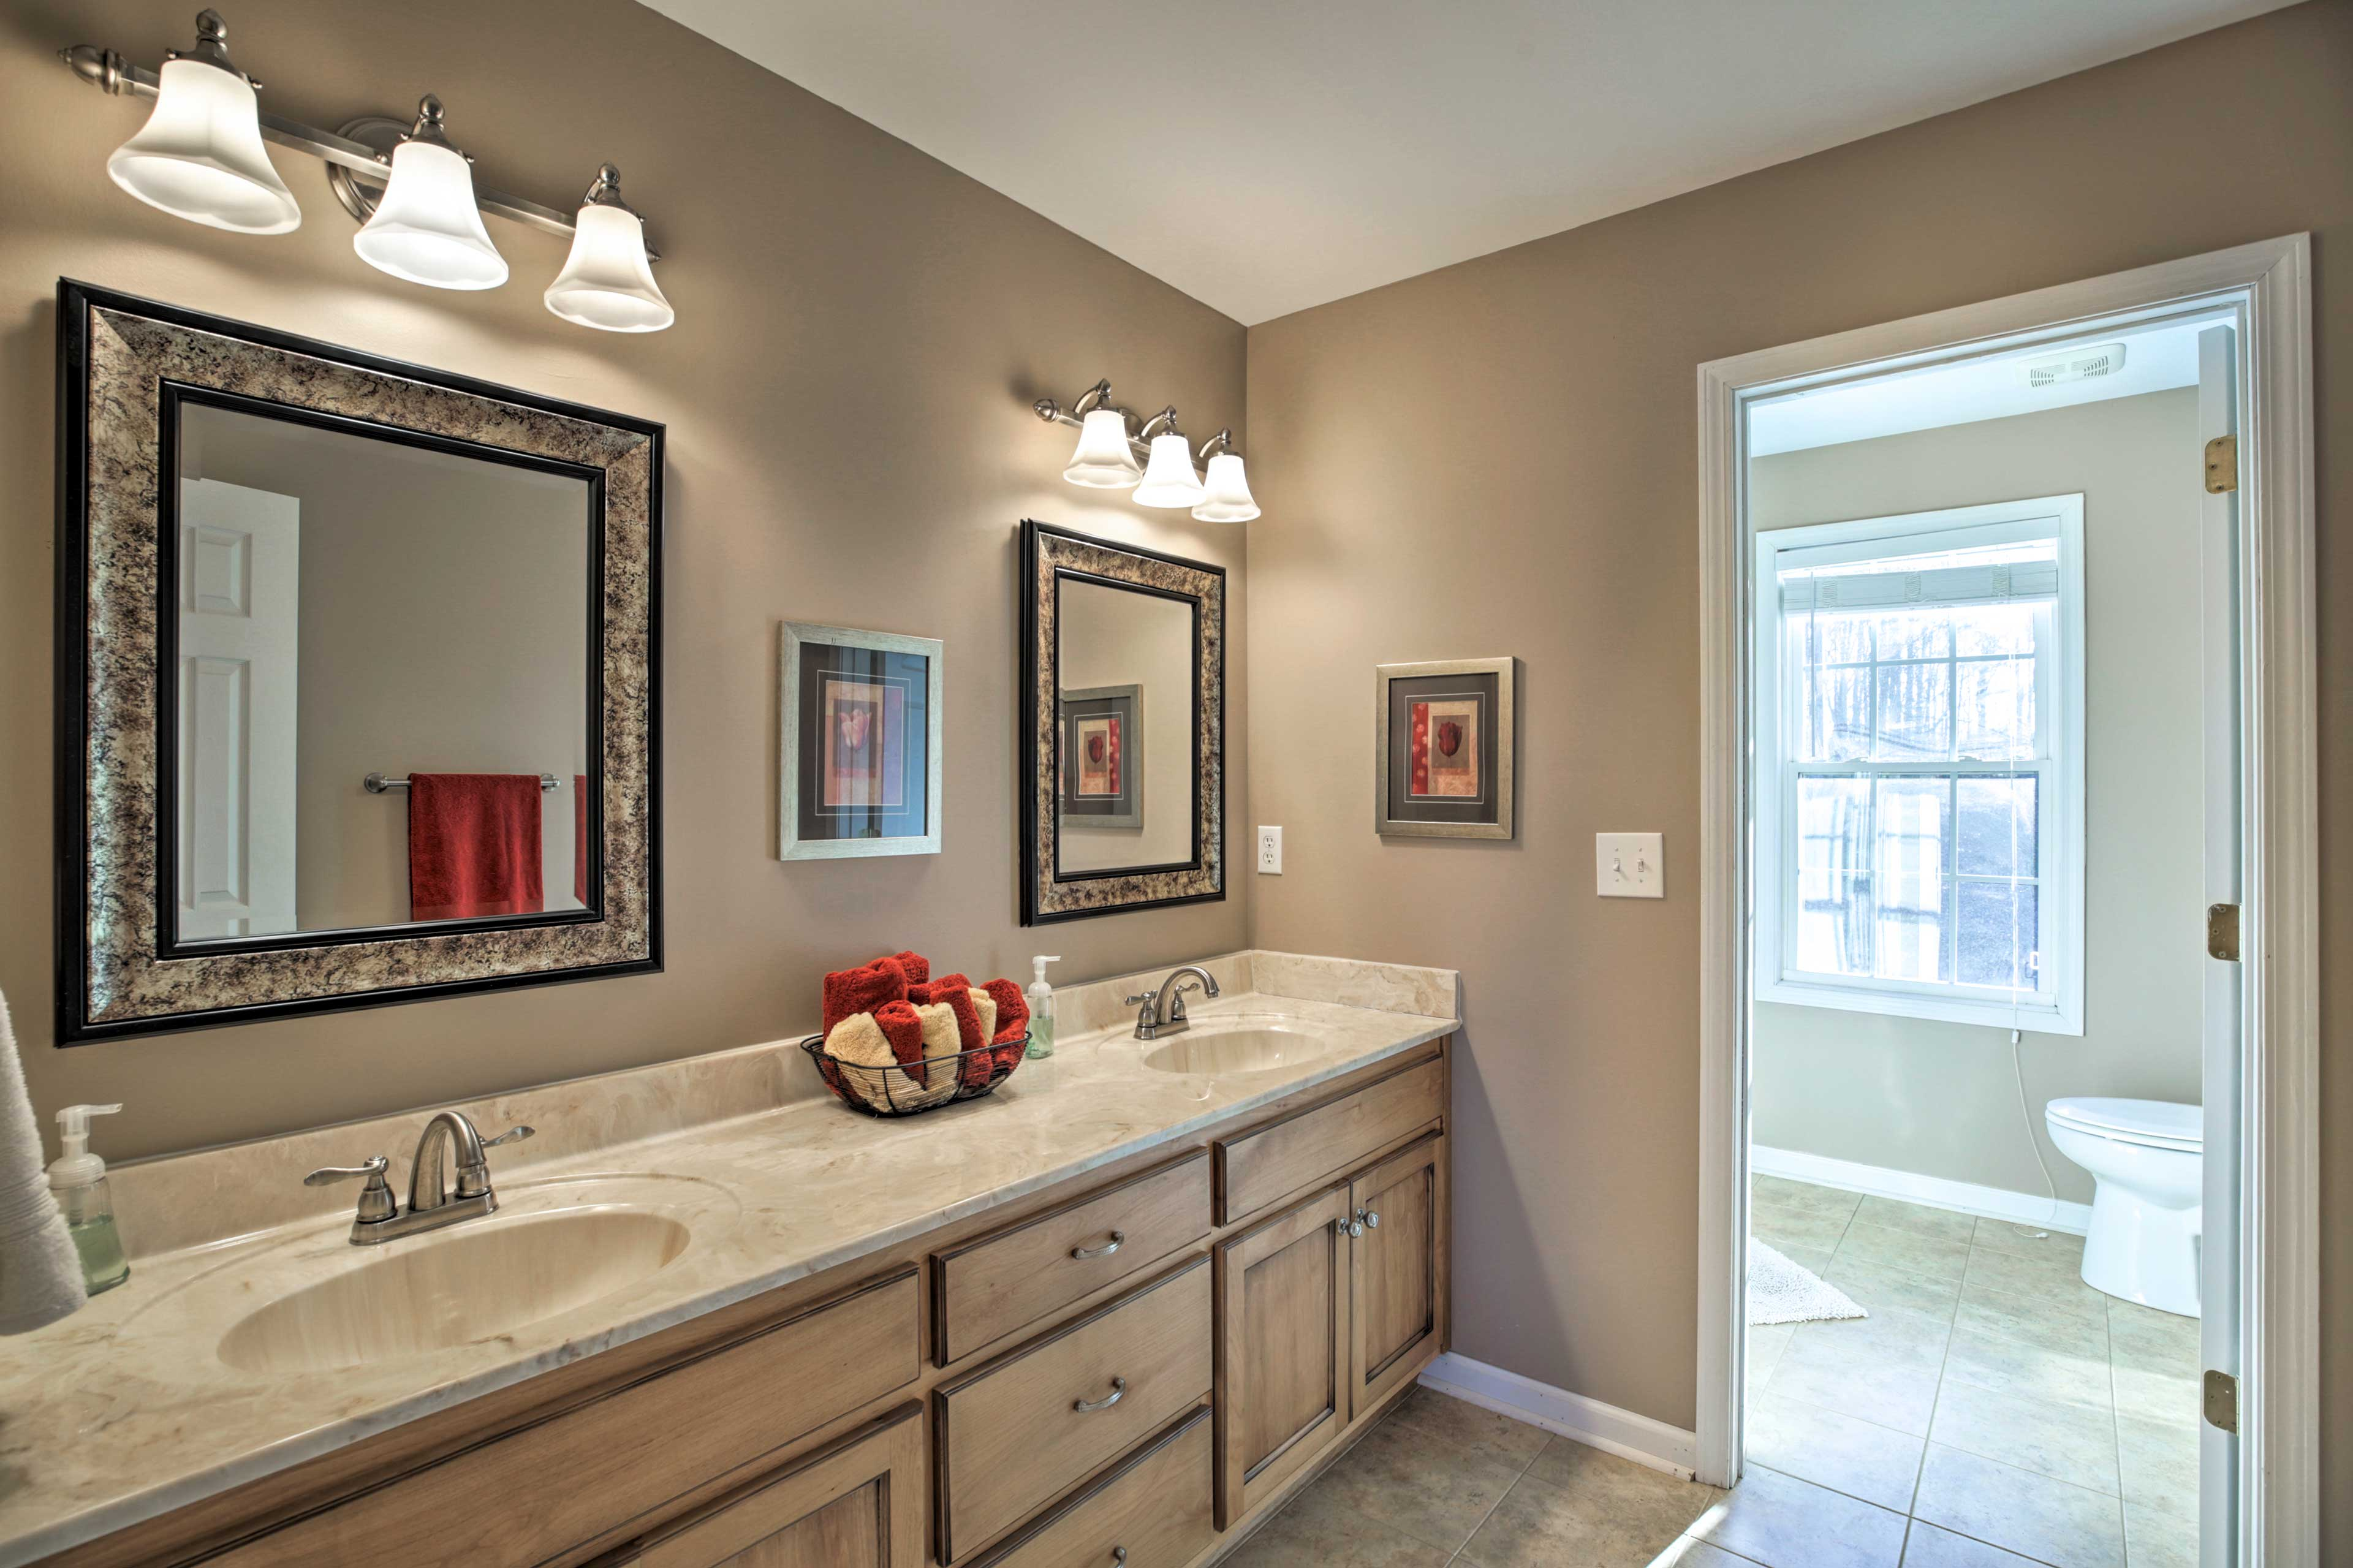 The second full bathroom includes double sinks.